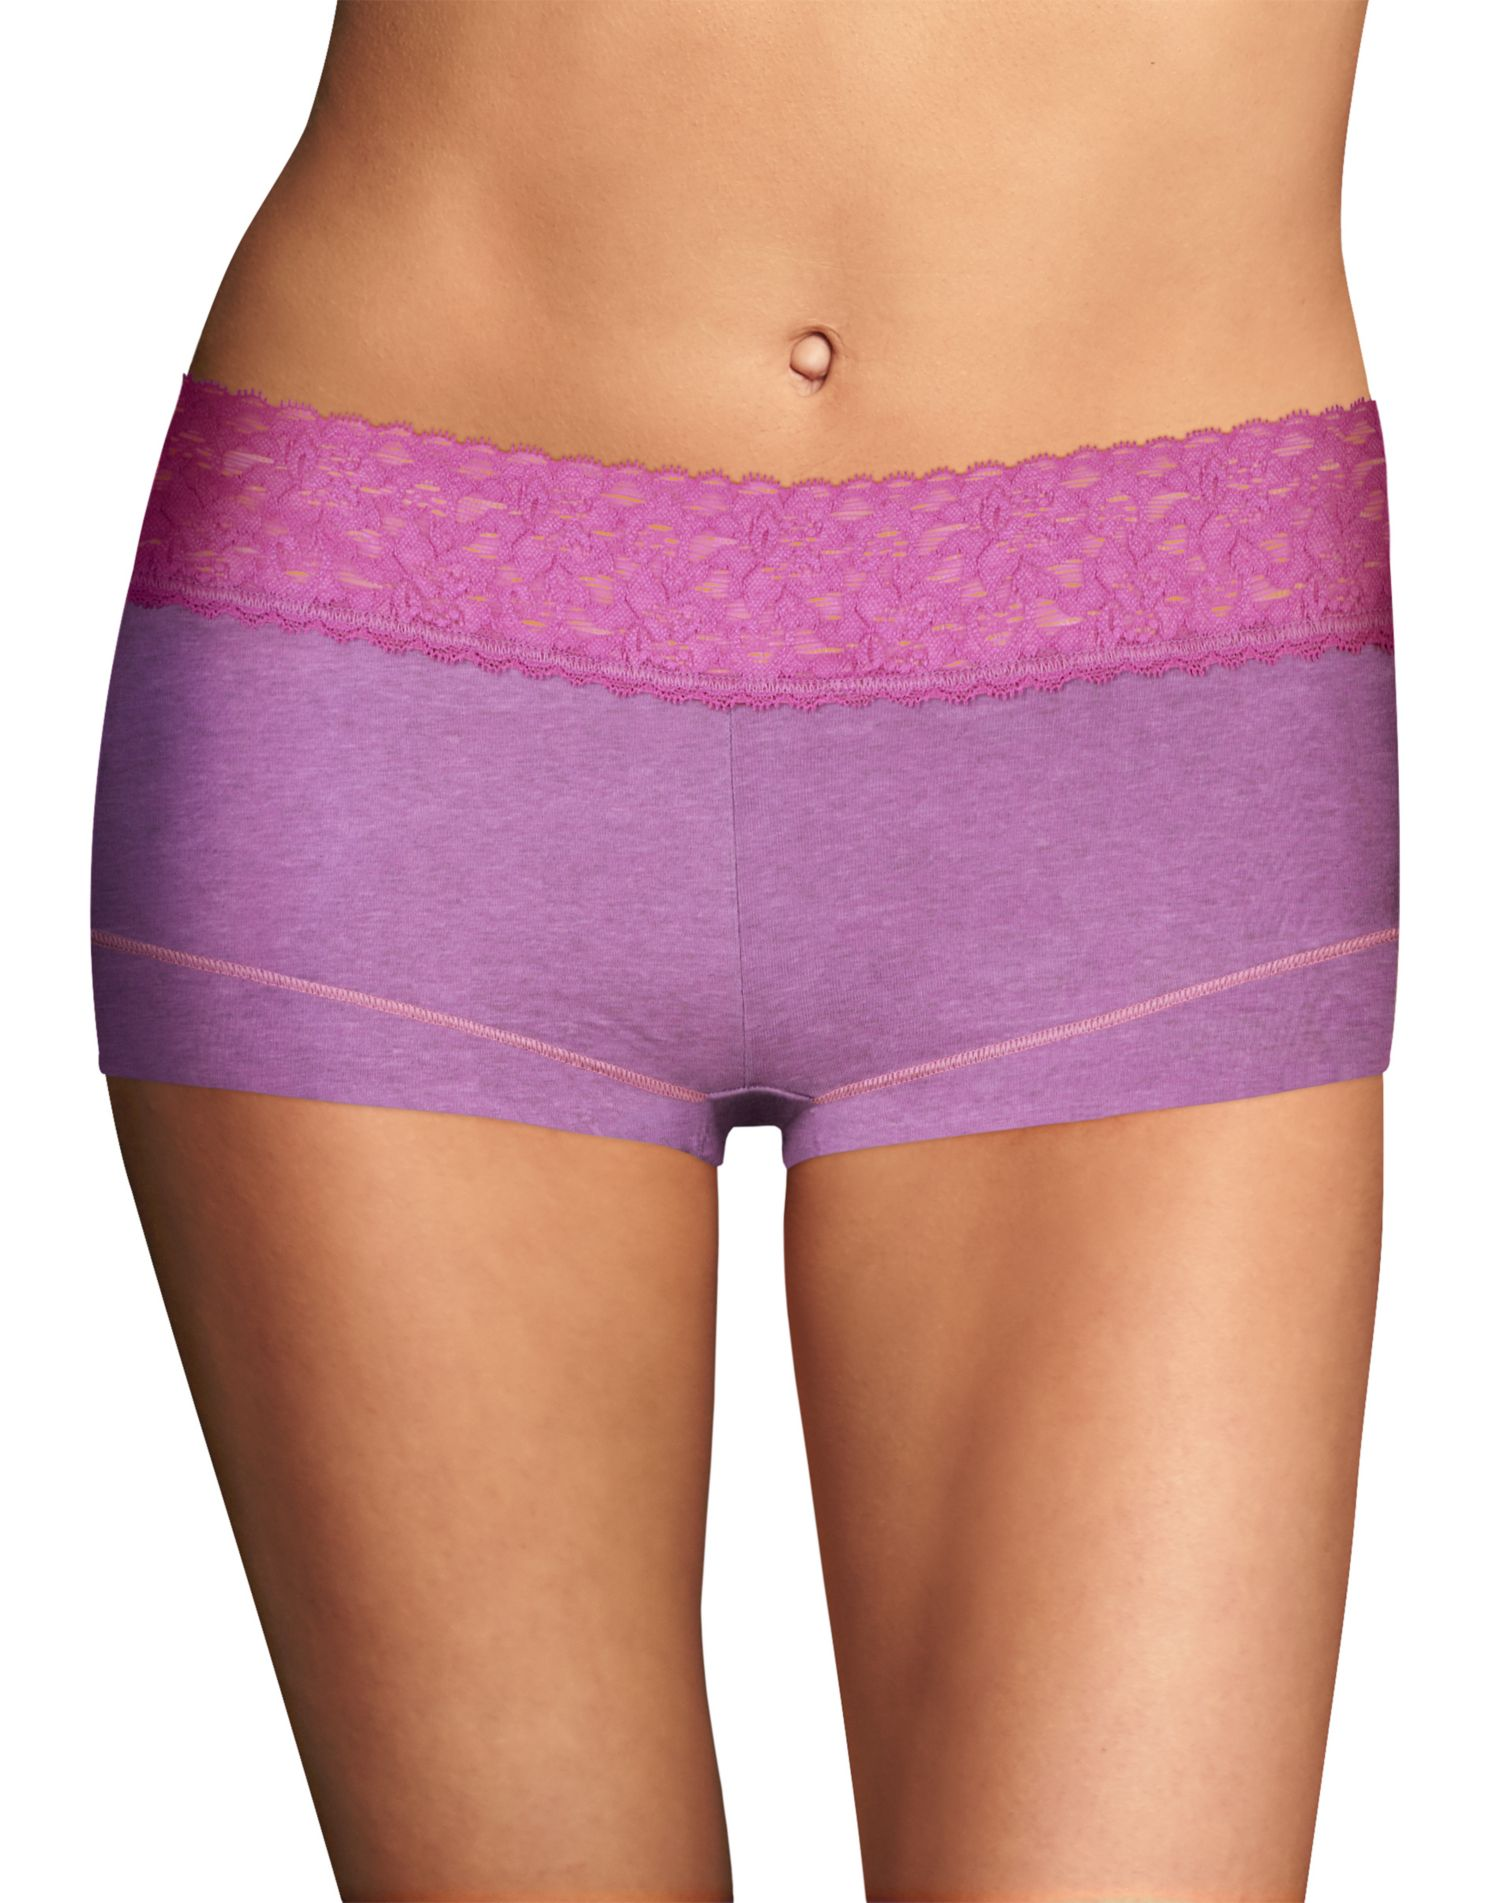 Maidenform Cotton Dream Womens Boyshort With Lace - Best-Seller, 6